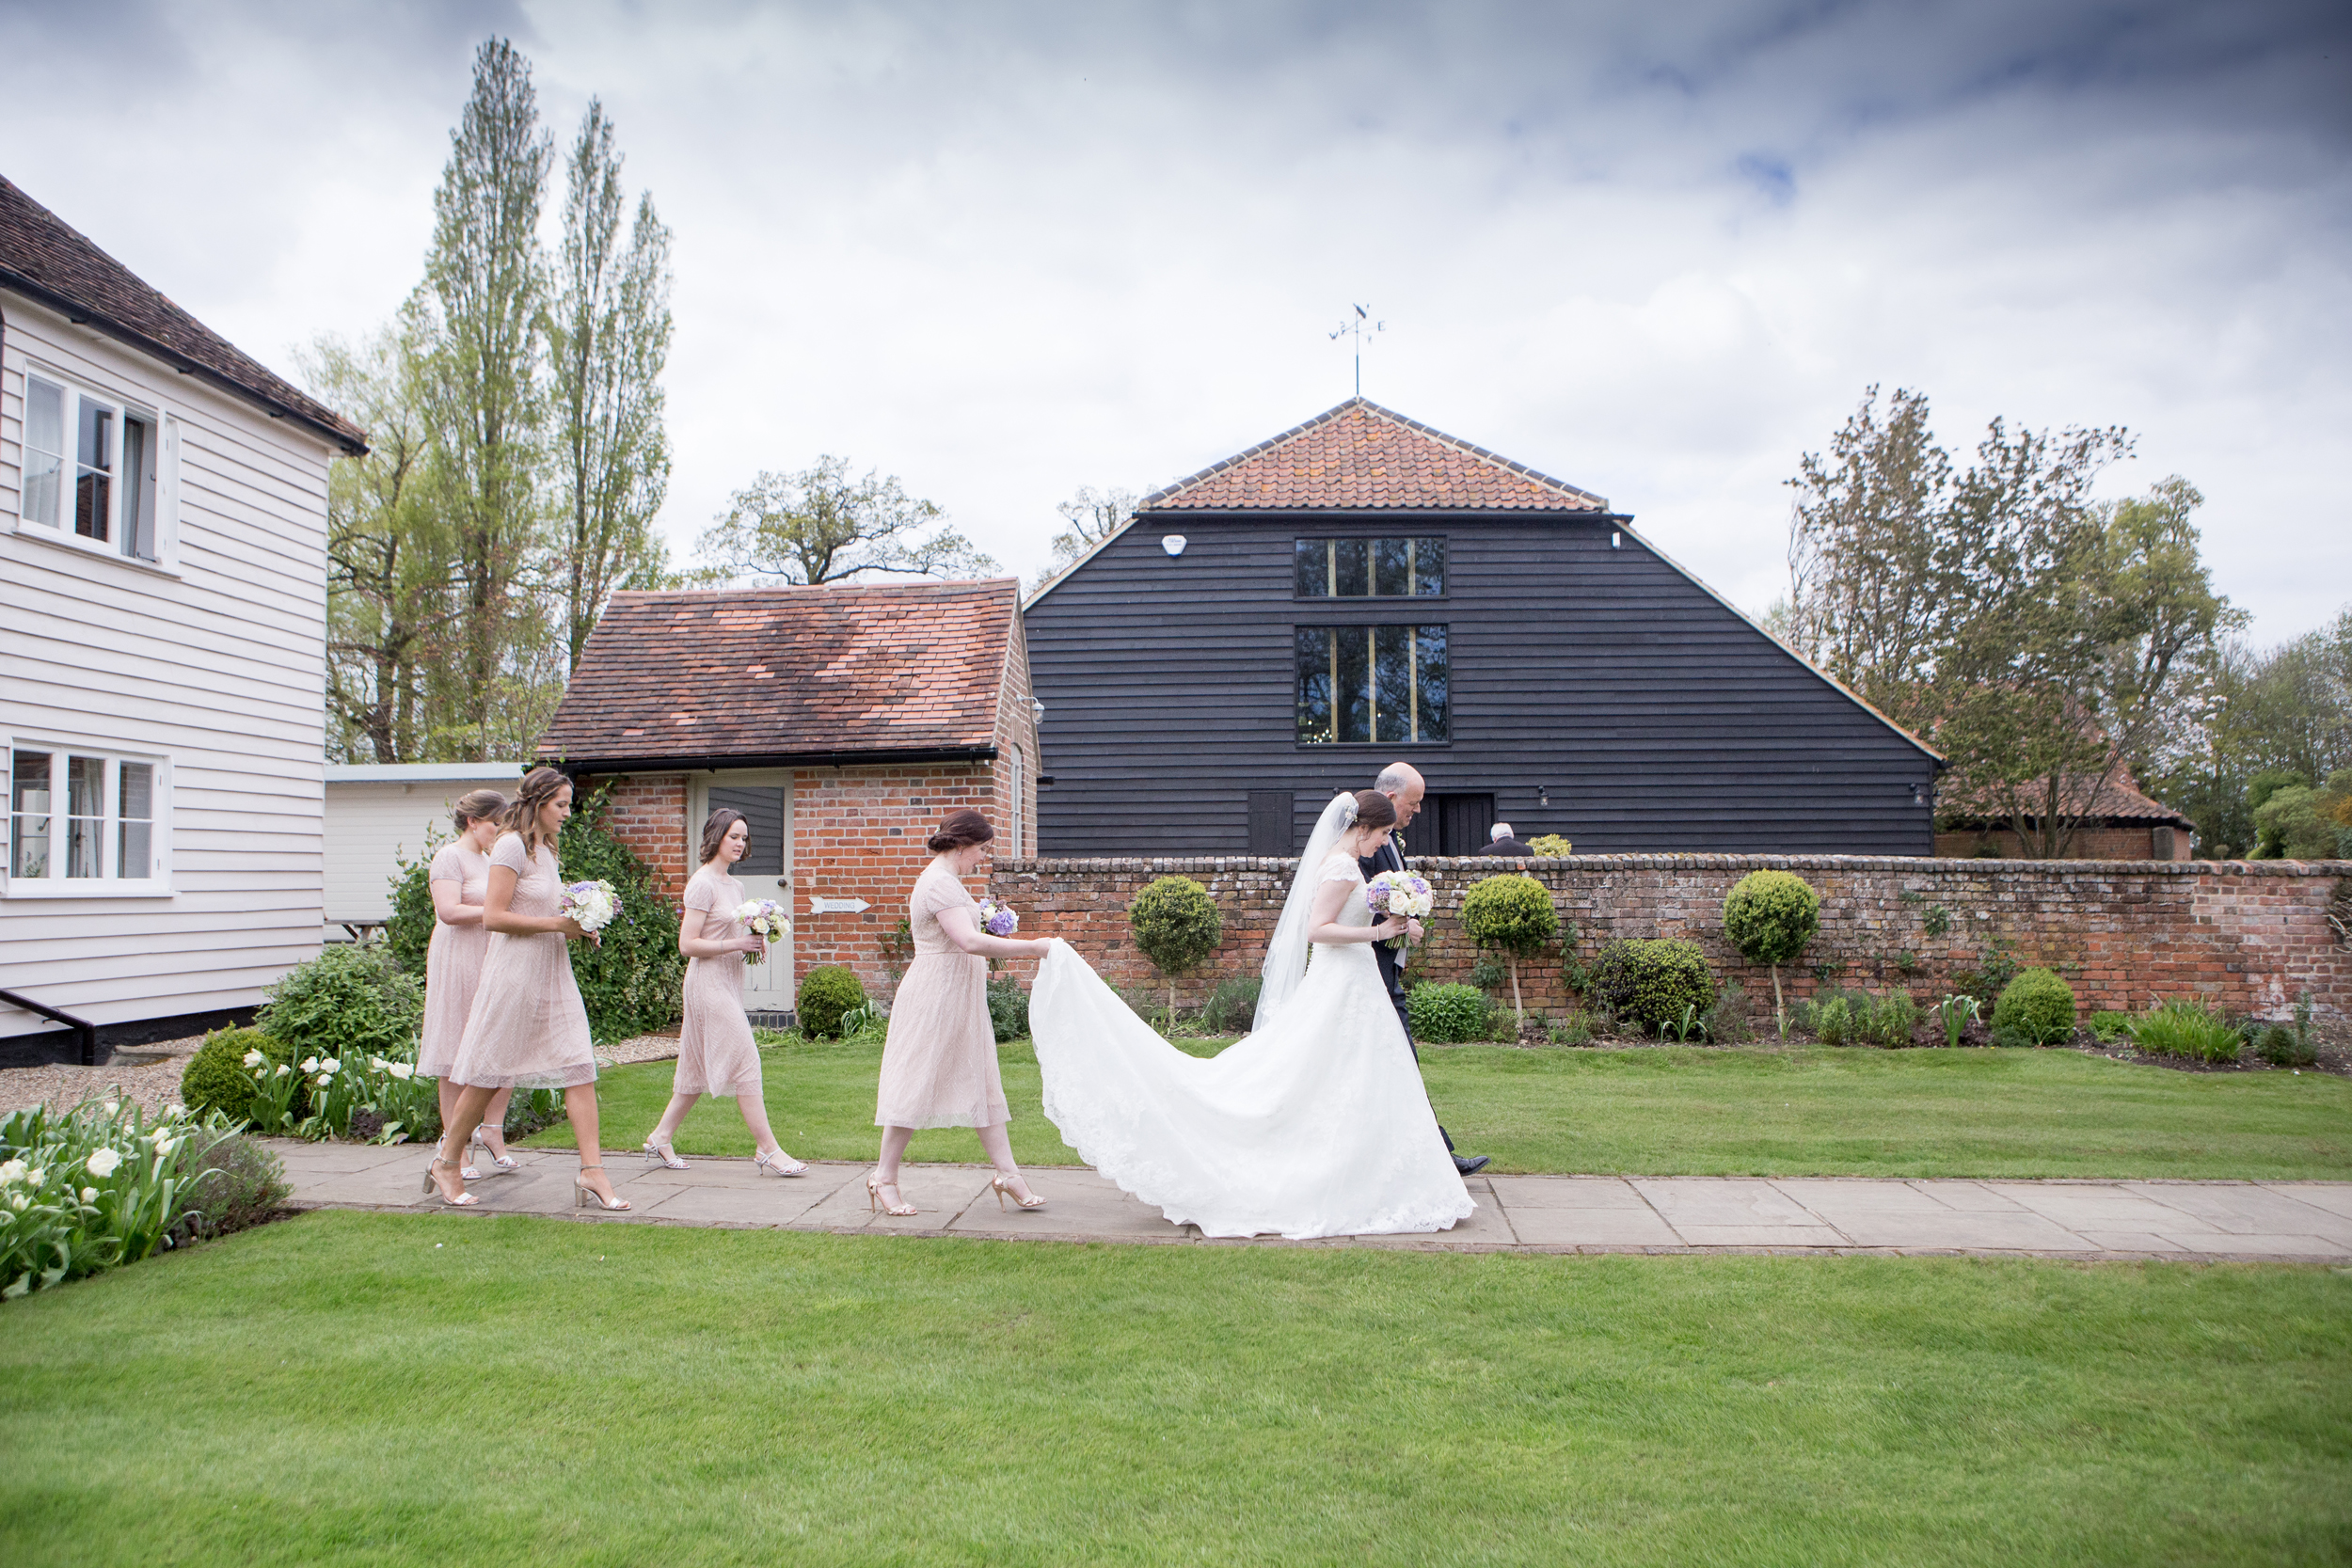 Natalie and Jack Pretty Barn Wedding, Real Wedding 7 - Pingle Pie.jpg